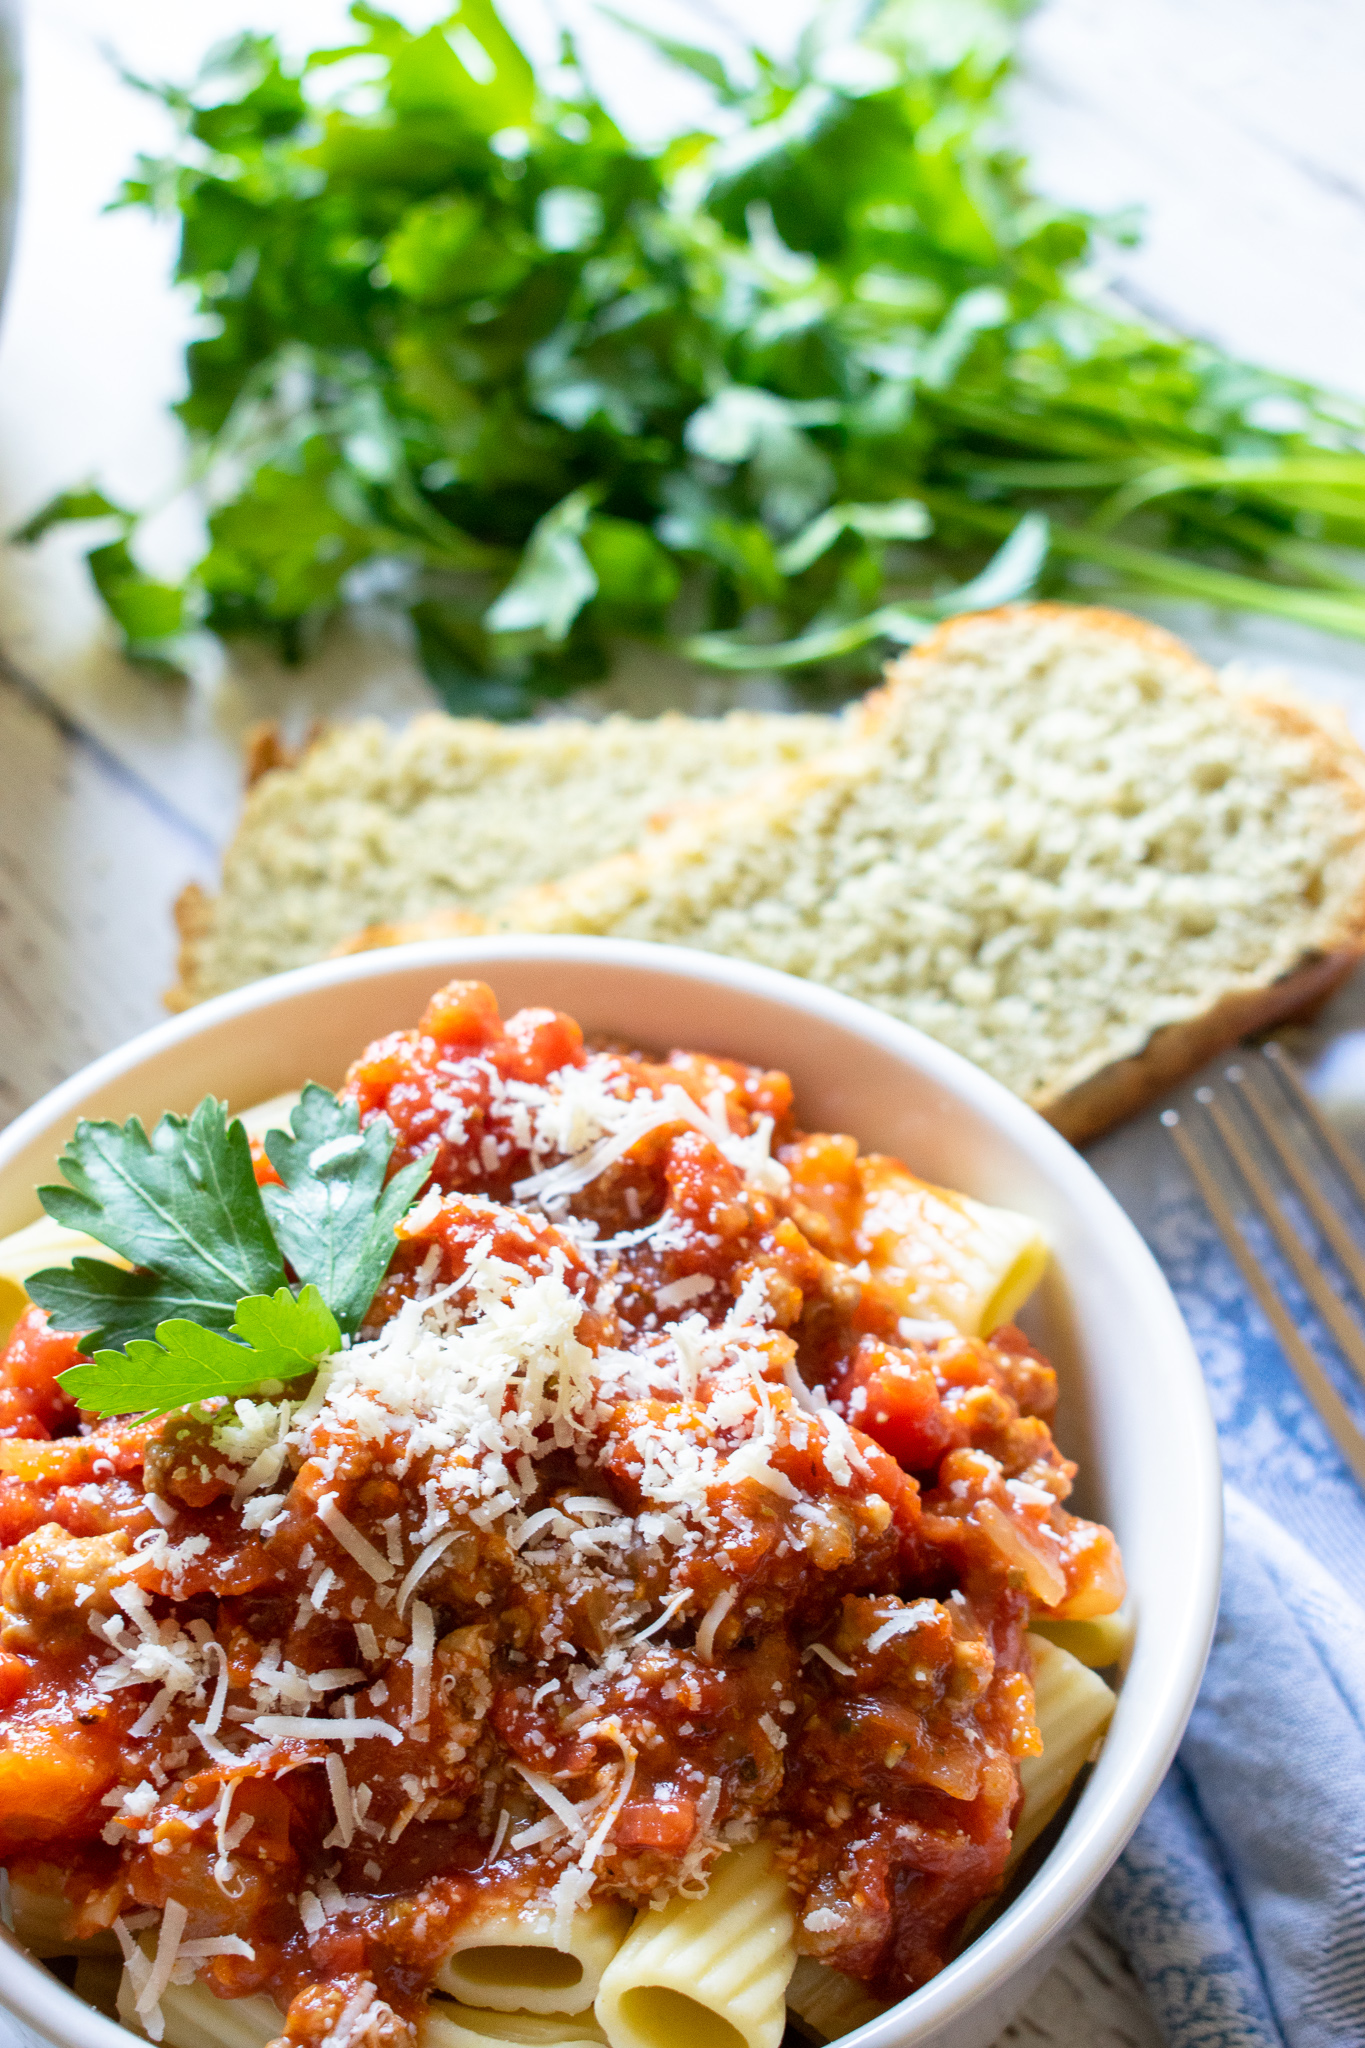 Italian Sausage sauce on top of rigatoni pasta garnished with freshly grated parmesan cheese and parsley.